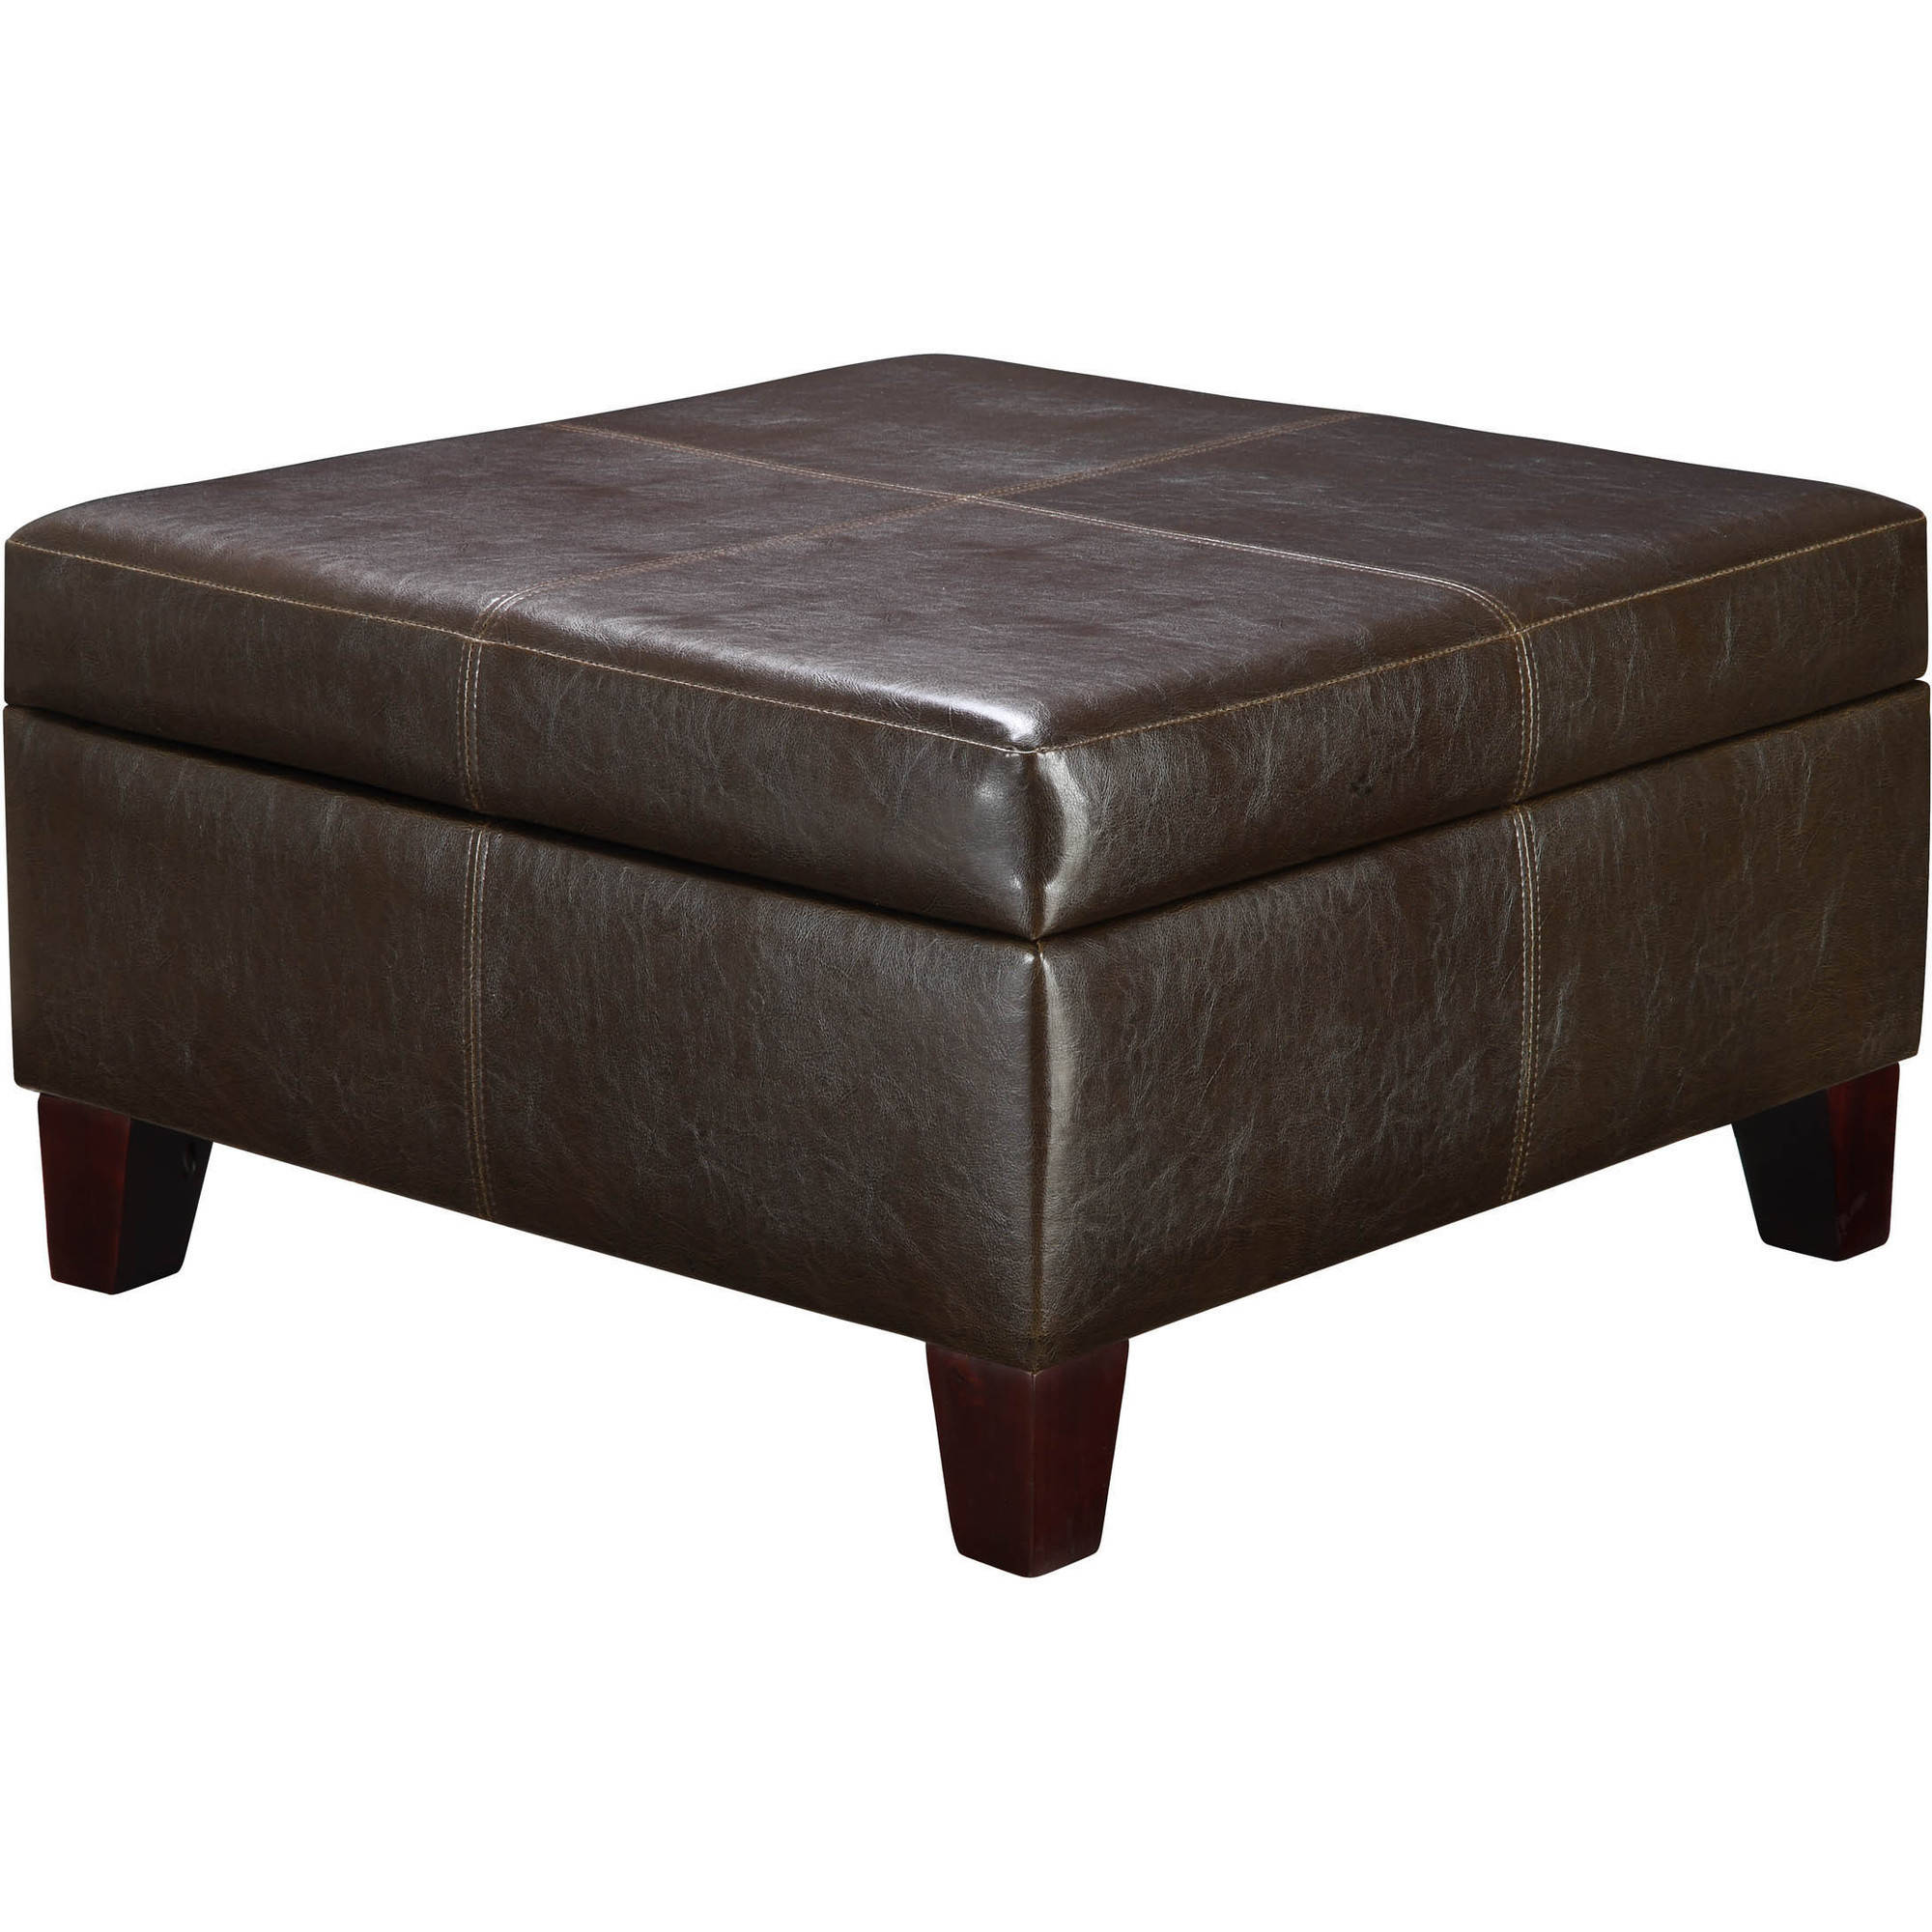 Exceptionnel Dorel Living Square Storage Ottoman, Multiple Colors   Walmart.com